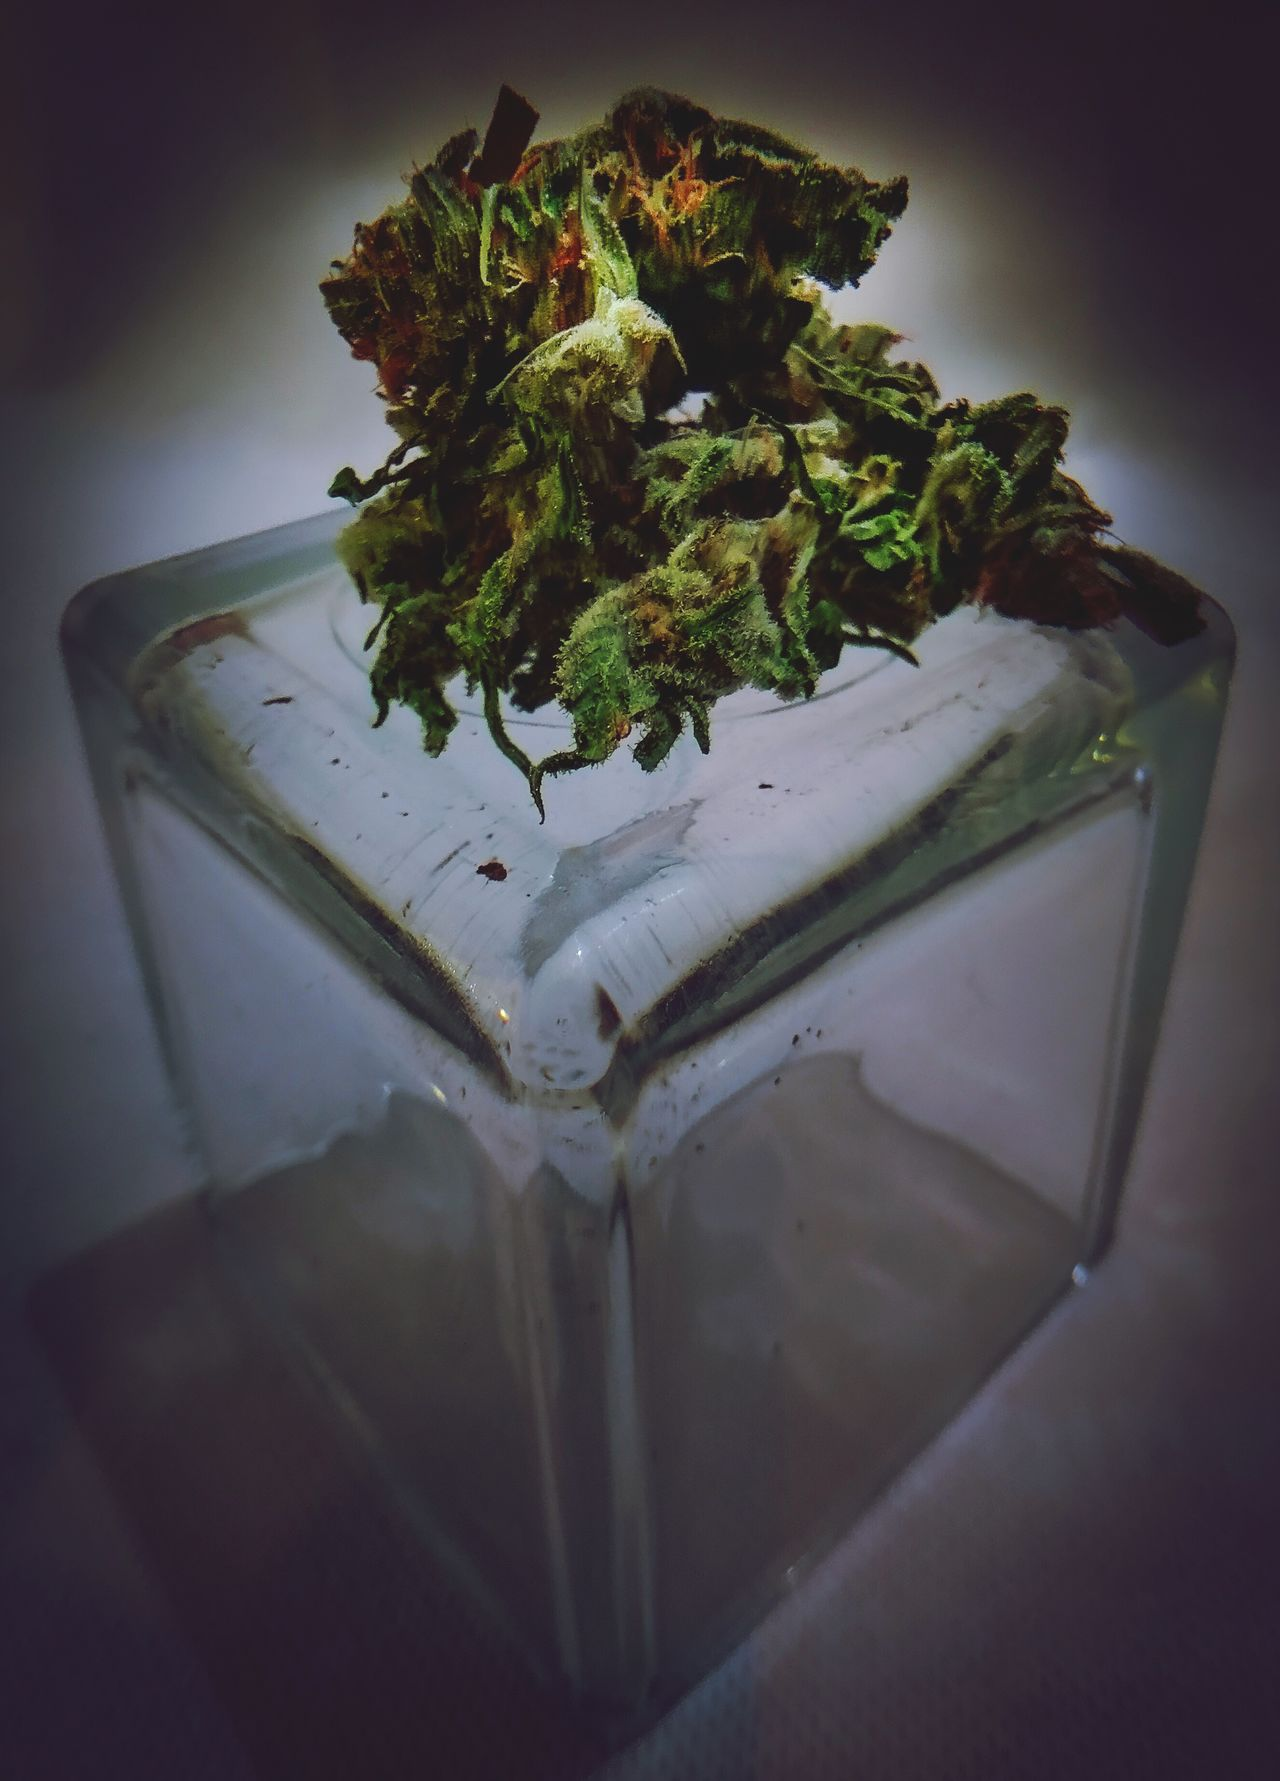 Night creativity, urban style No People Indoors  Food And Drink Close-up Table Cannabis Plant Nature Freshness Freestyle Iphonephotography Focus On Foreground Objects Weed Smoke Smoke Weed ArtWork Ganja Urban Urbanphotography Urban Art Glass - Material Soft Softness Soft Focus